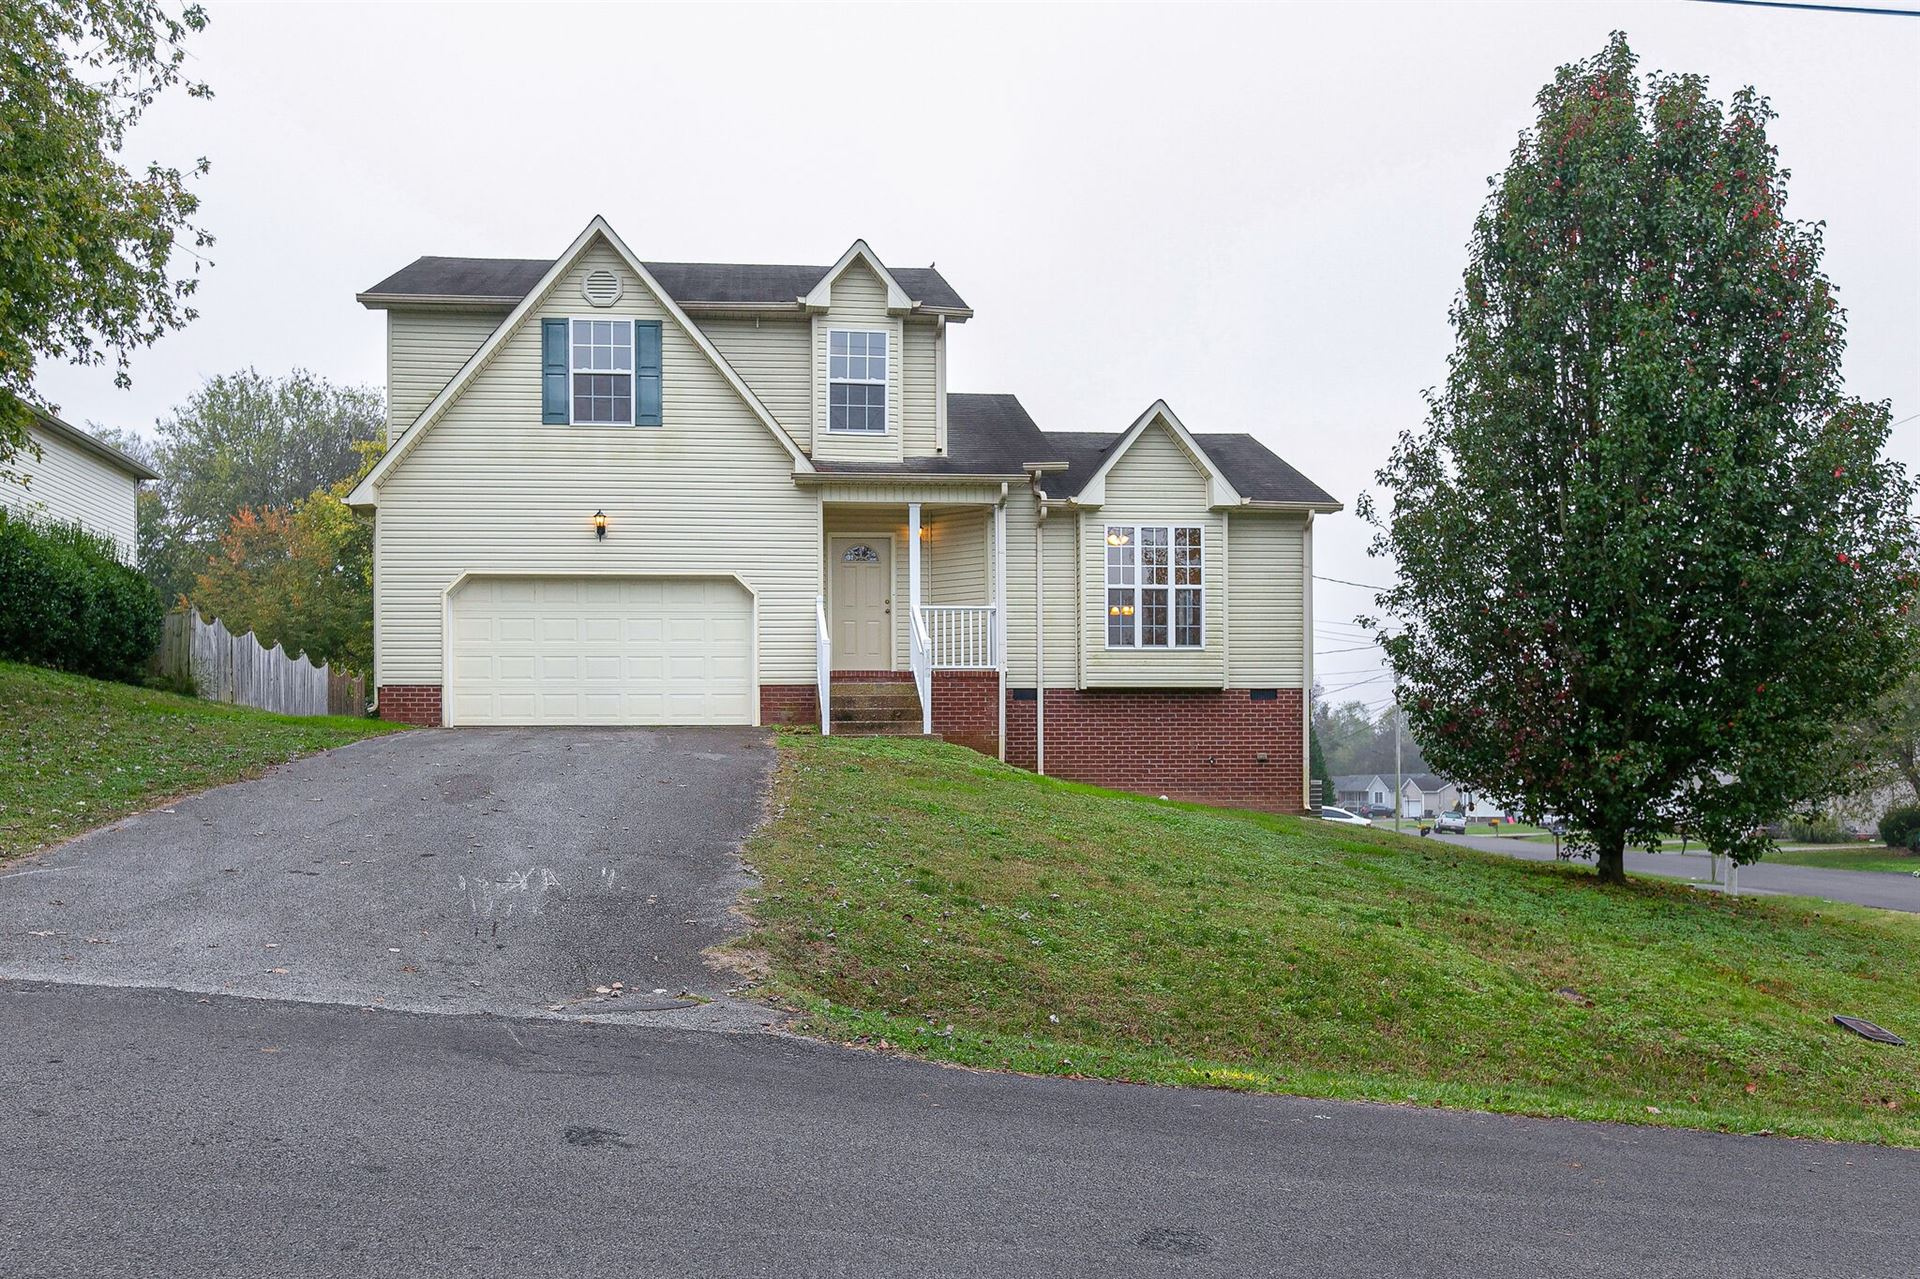 100 Kimberly Dr, Columbia, TN 38401 - MLS#: 2202426